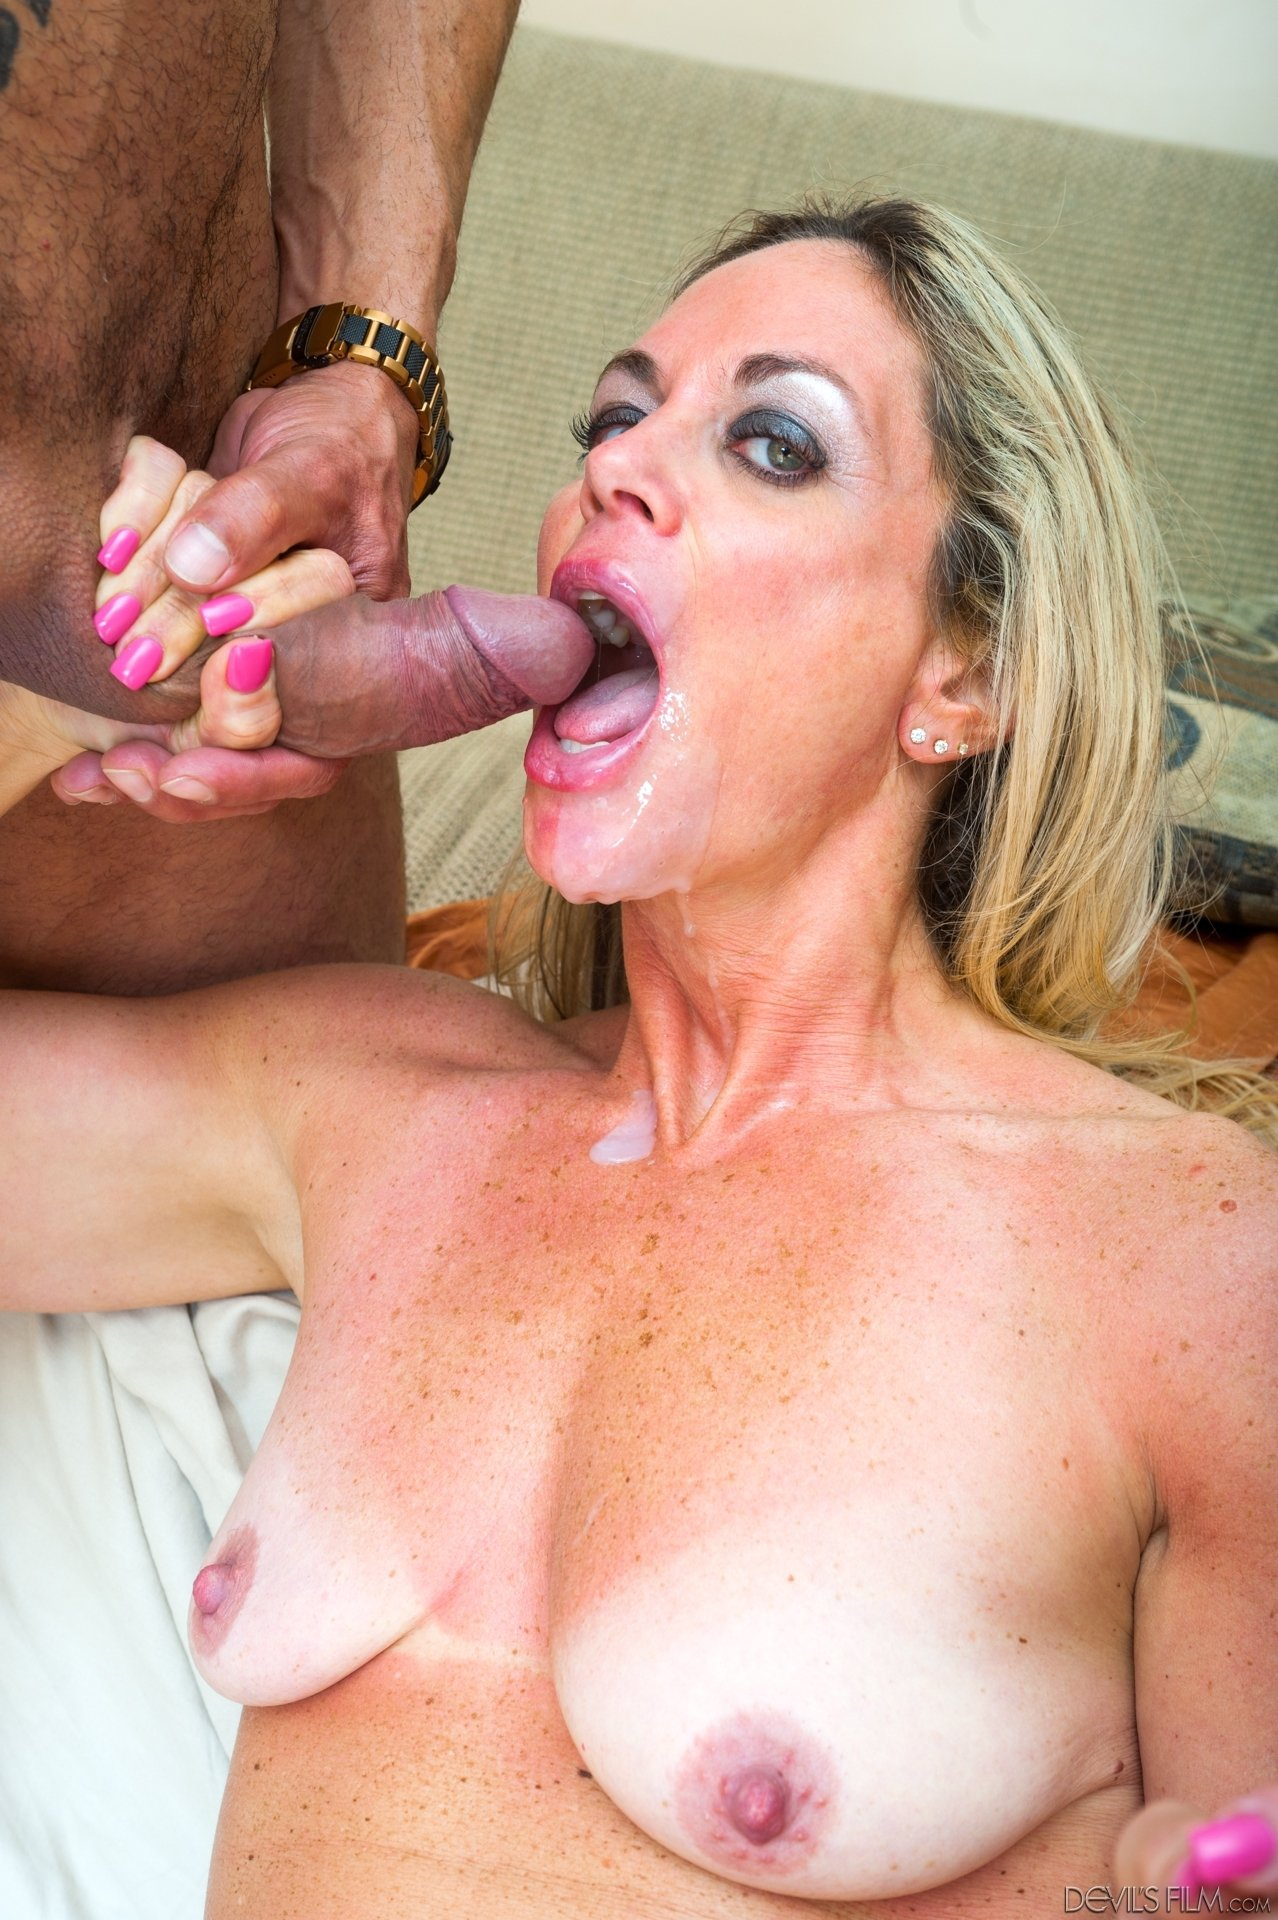 Wife tricked into being shared #1